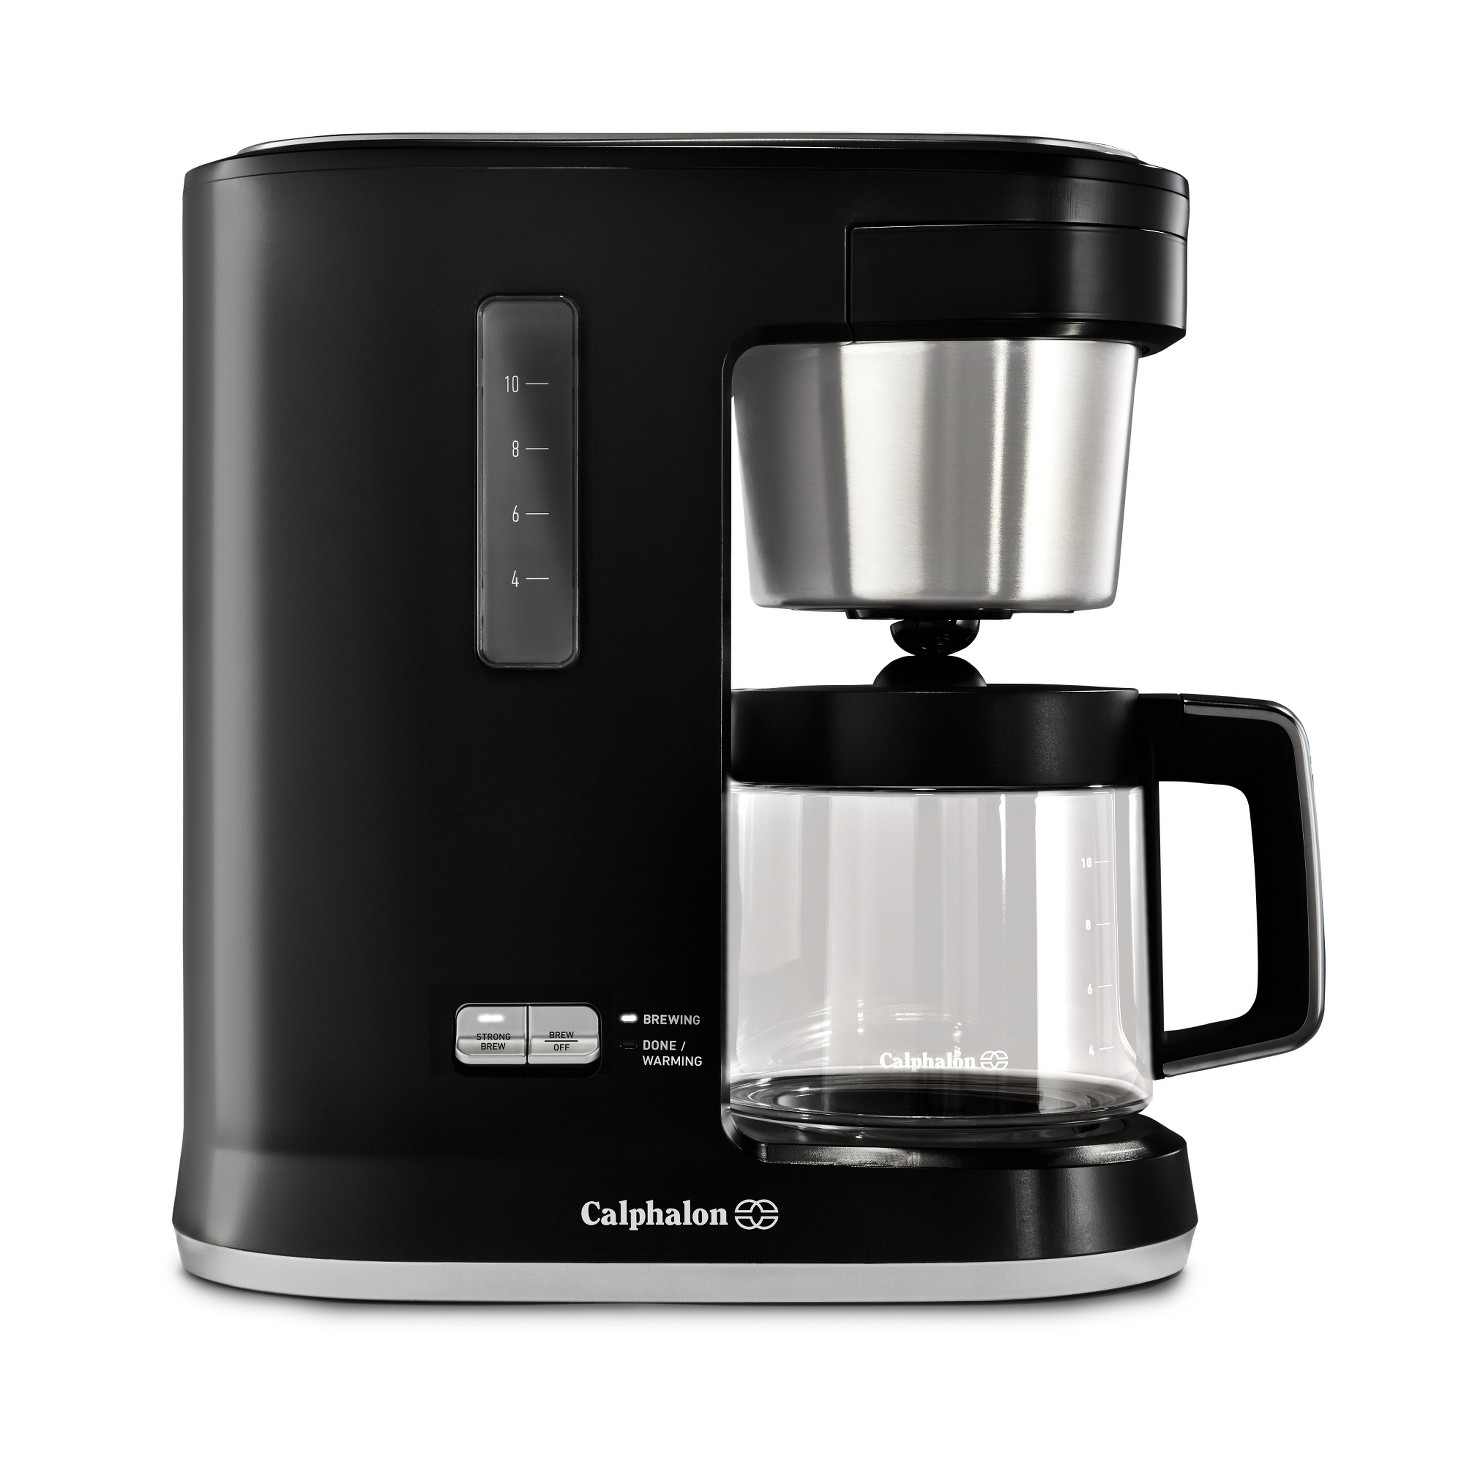 Calphalon Precision Control 10 Cup Coffee Maker